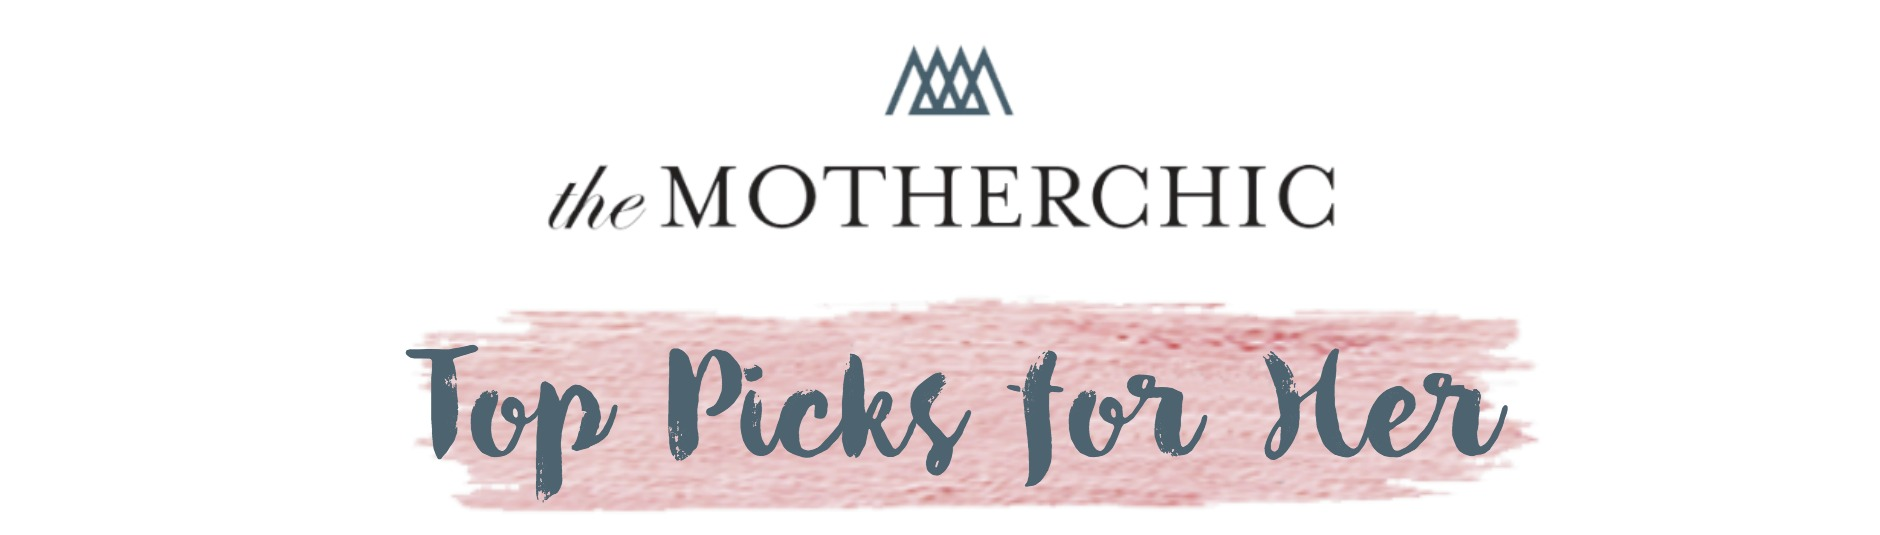 The Motherchic Black Friday